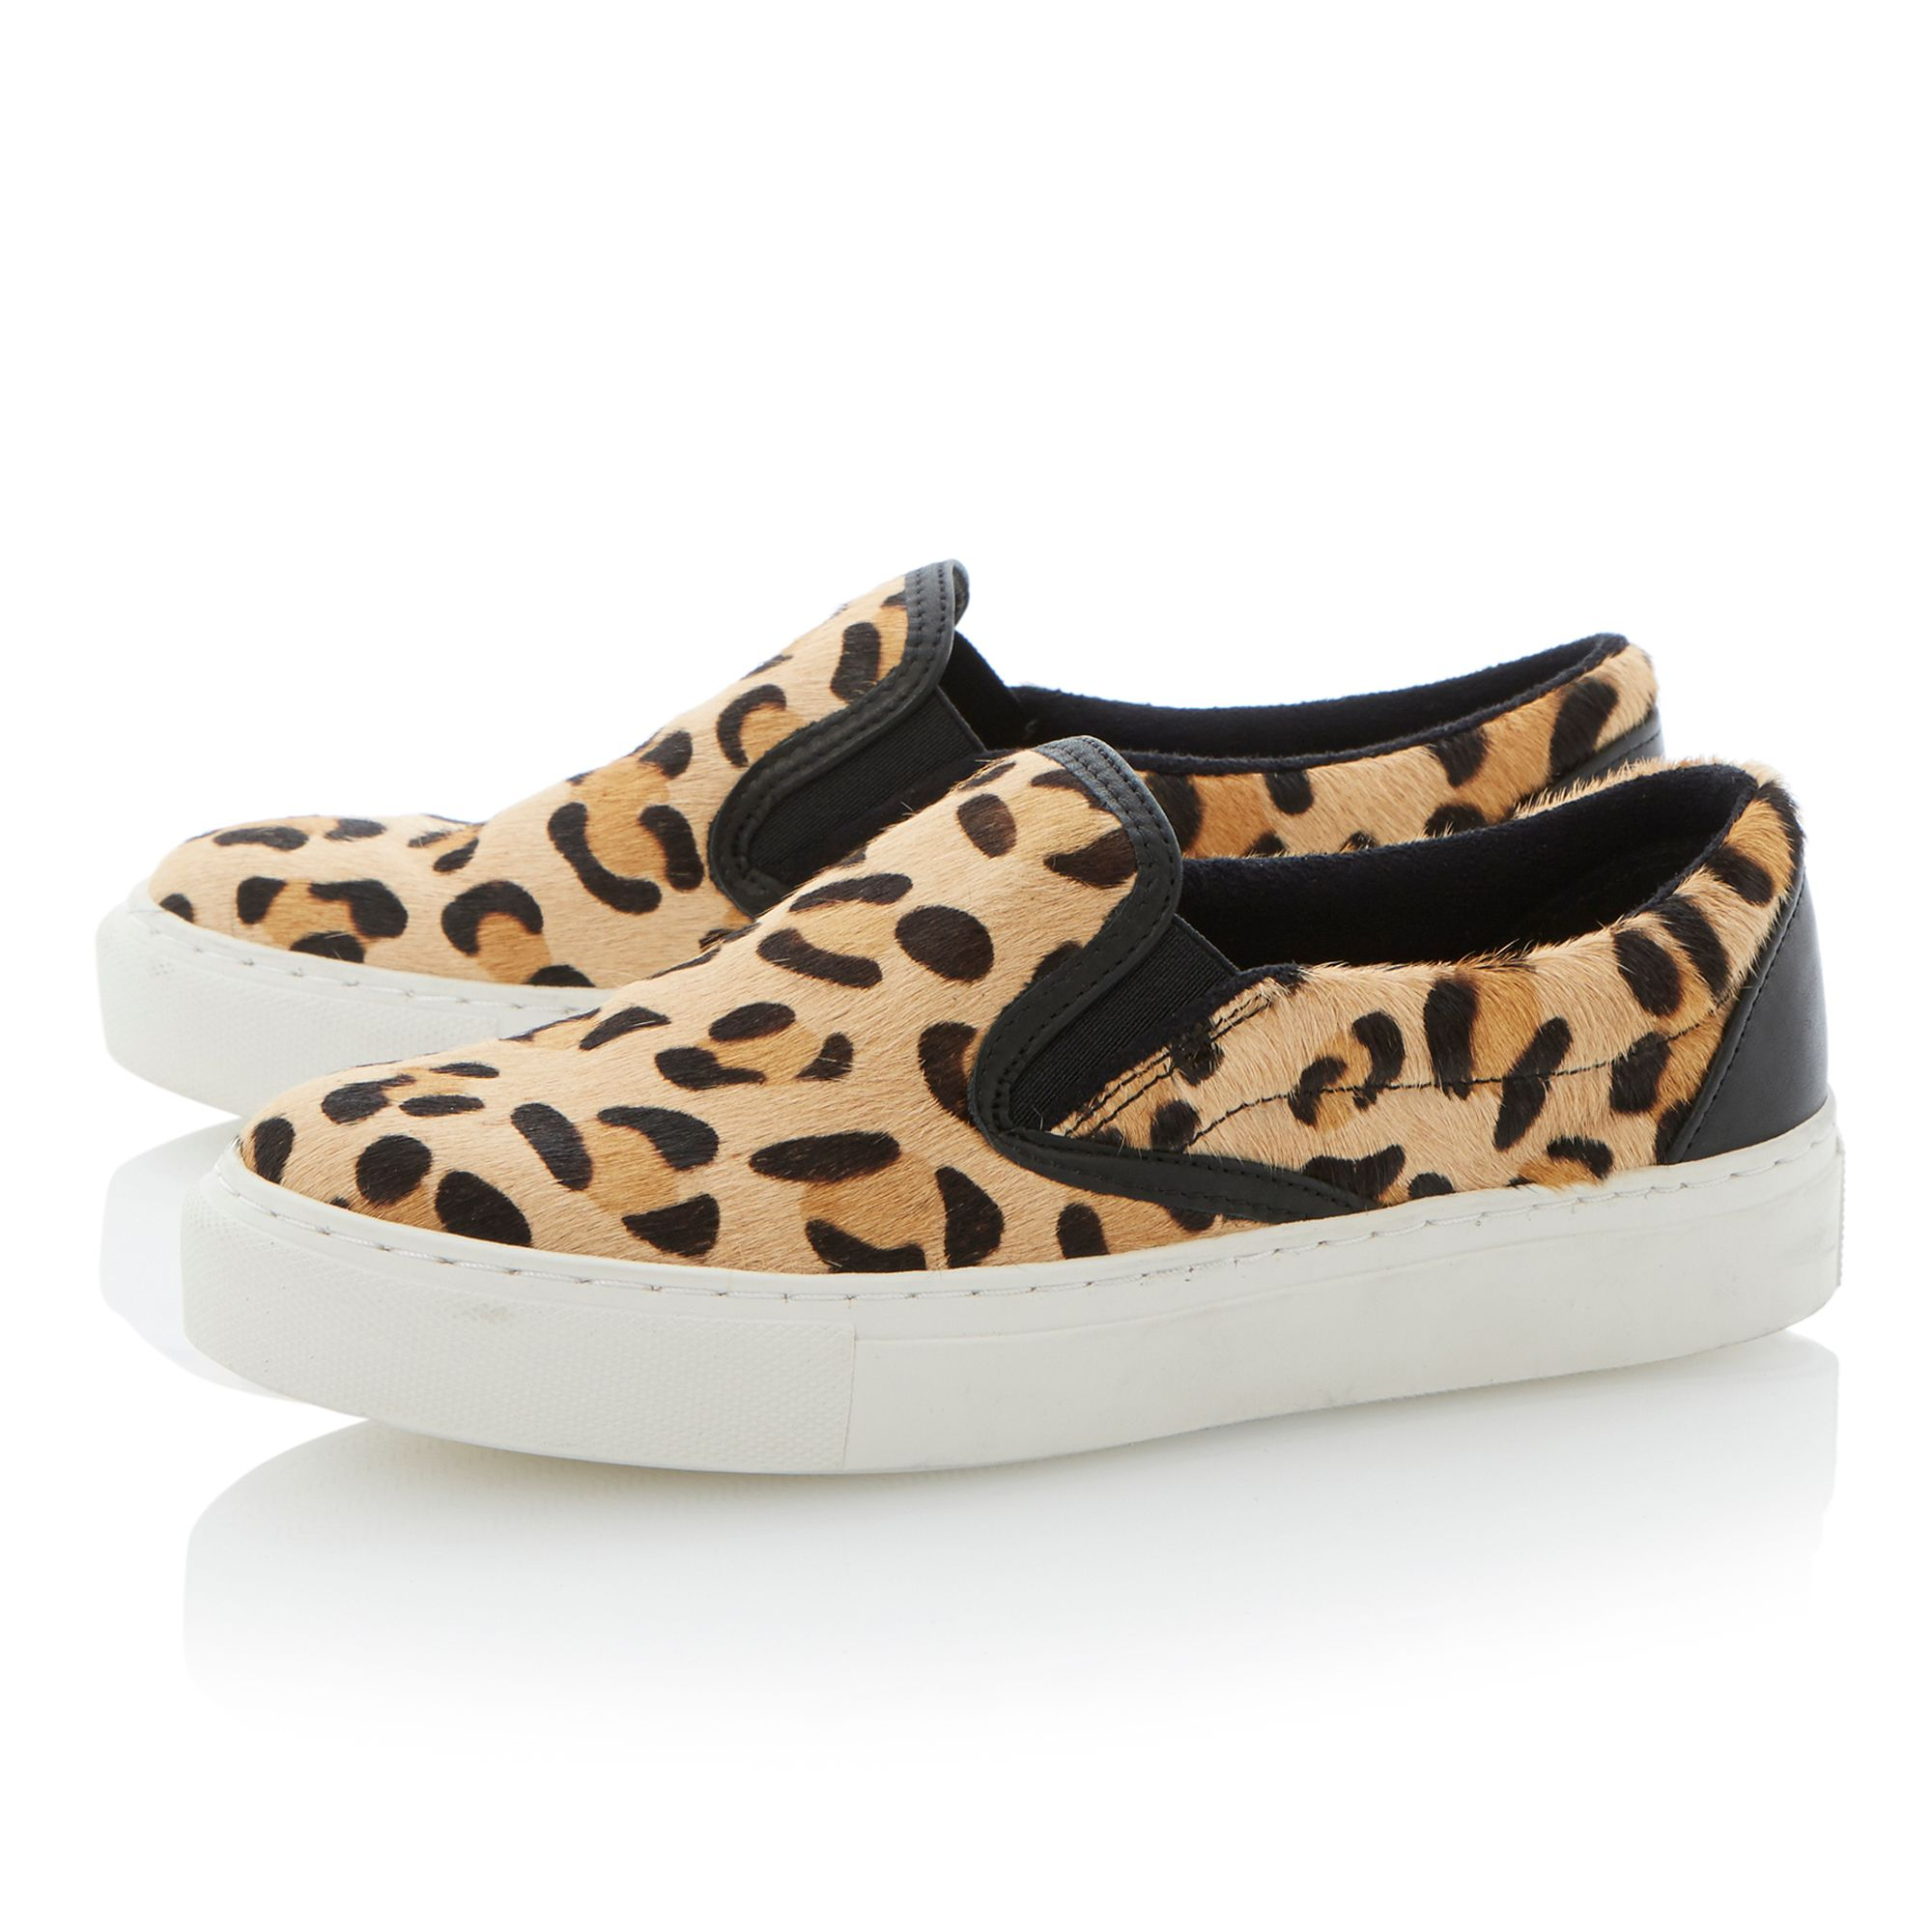 Putney mix material slip on shoes